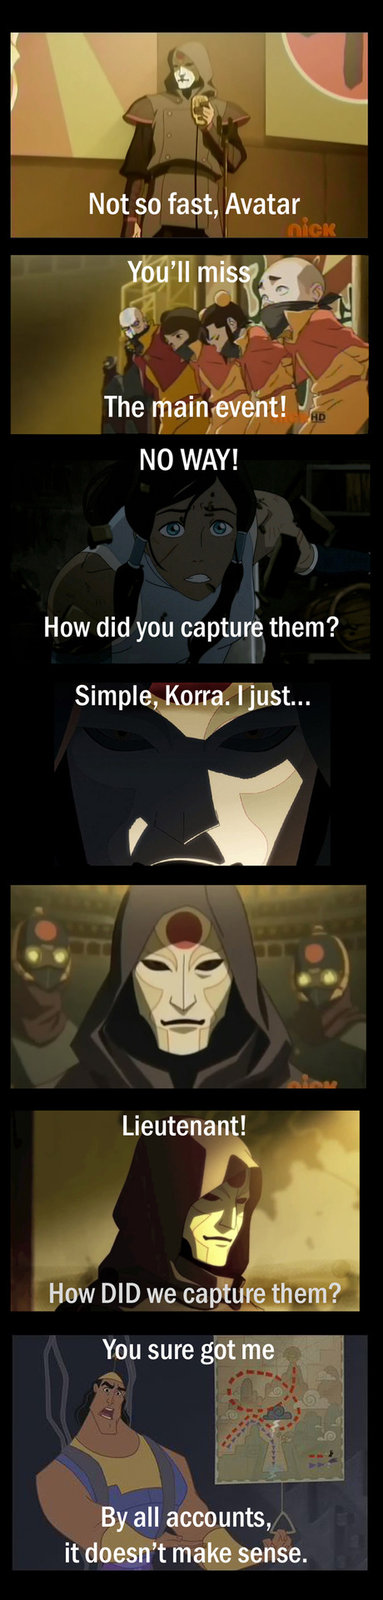 If Kronk was Amon's lieutenant, I have a feeling the season wouldn't have been very long.